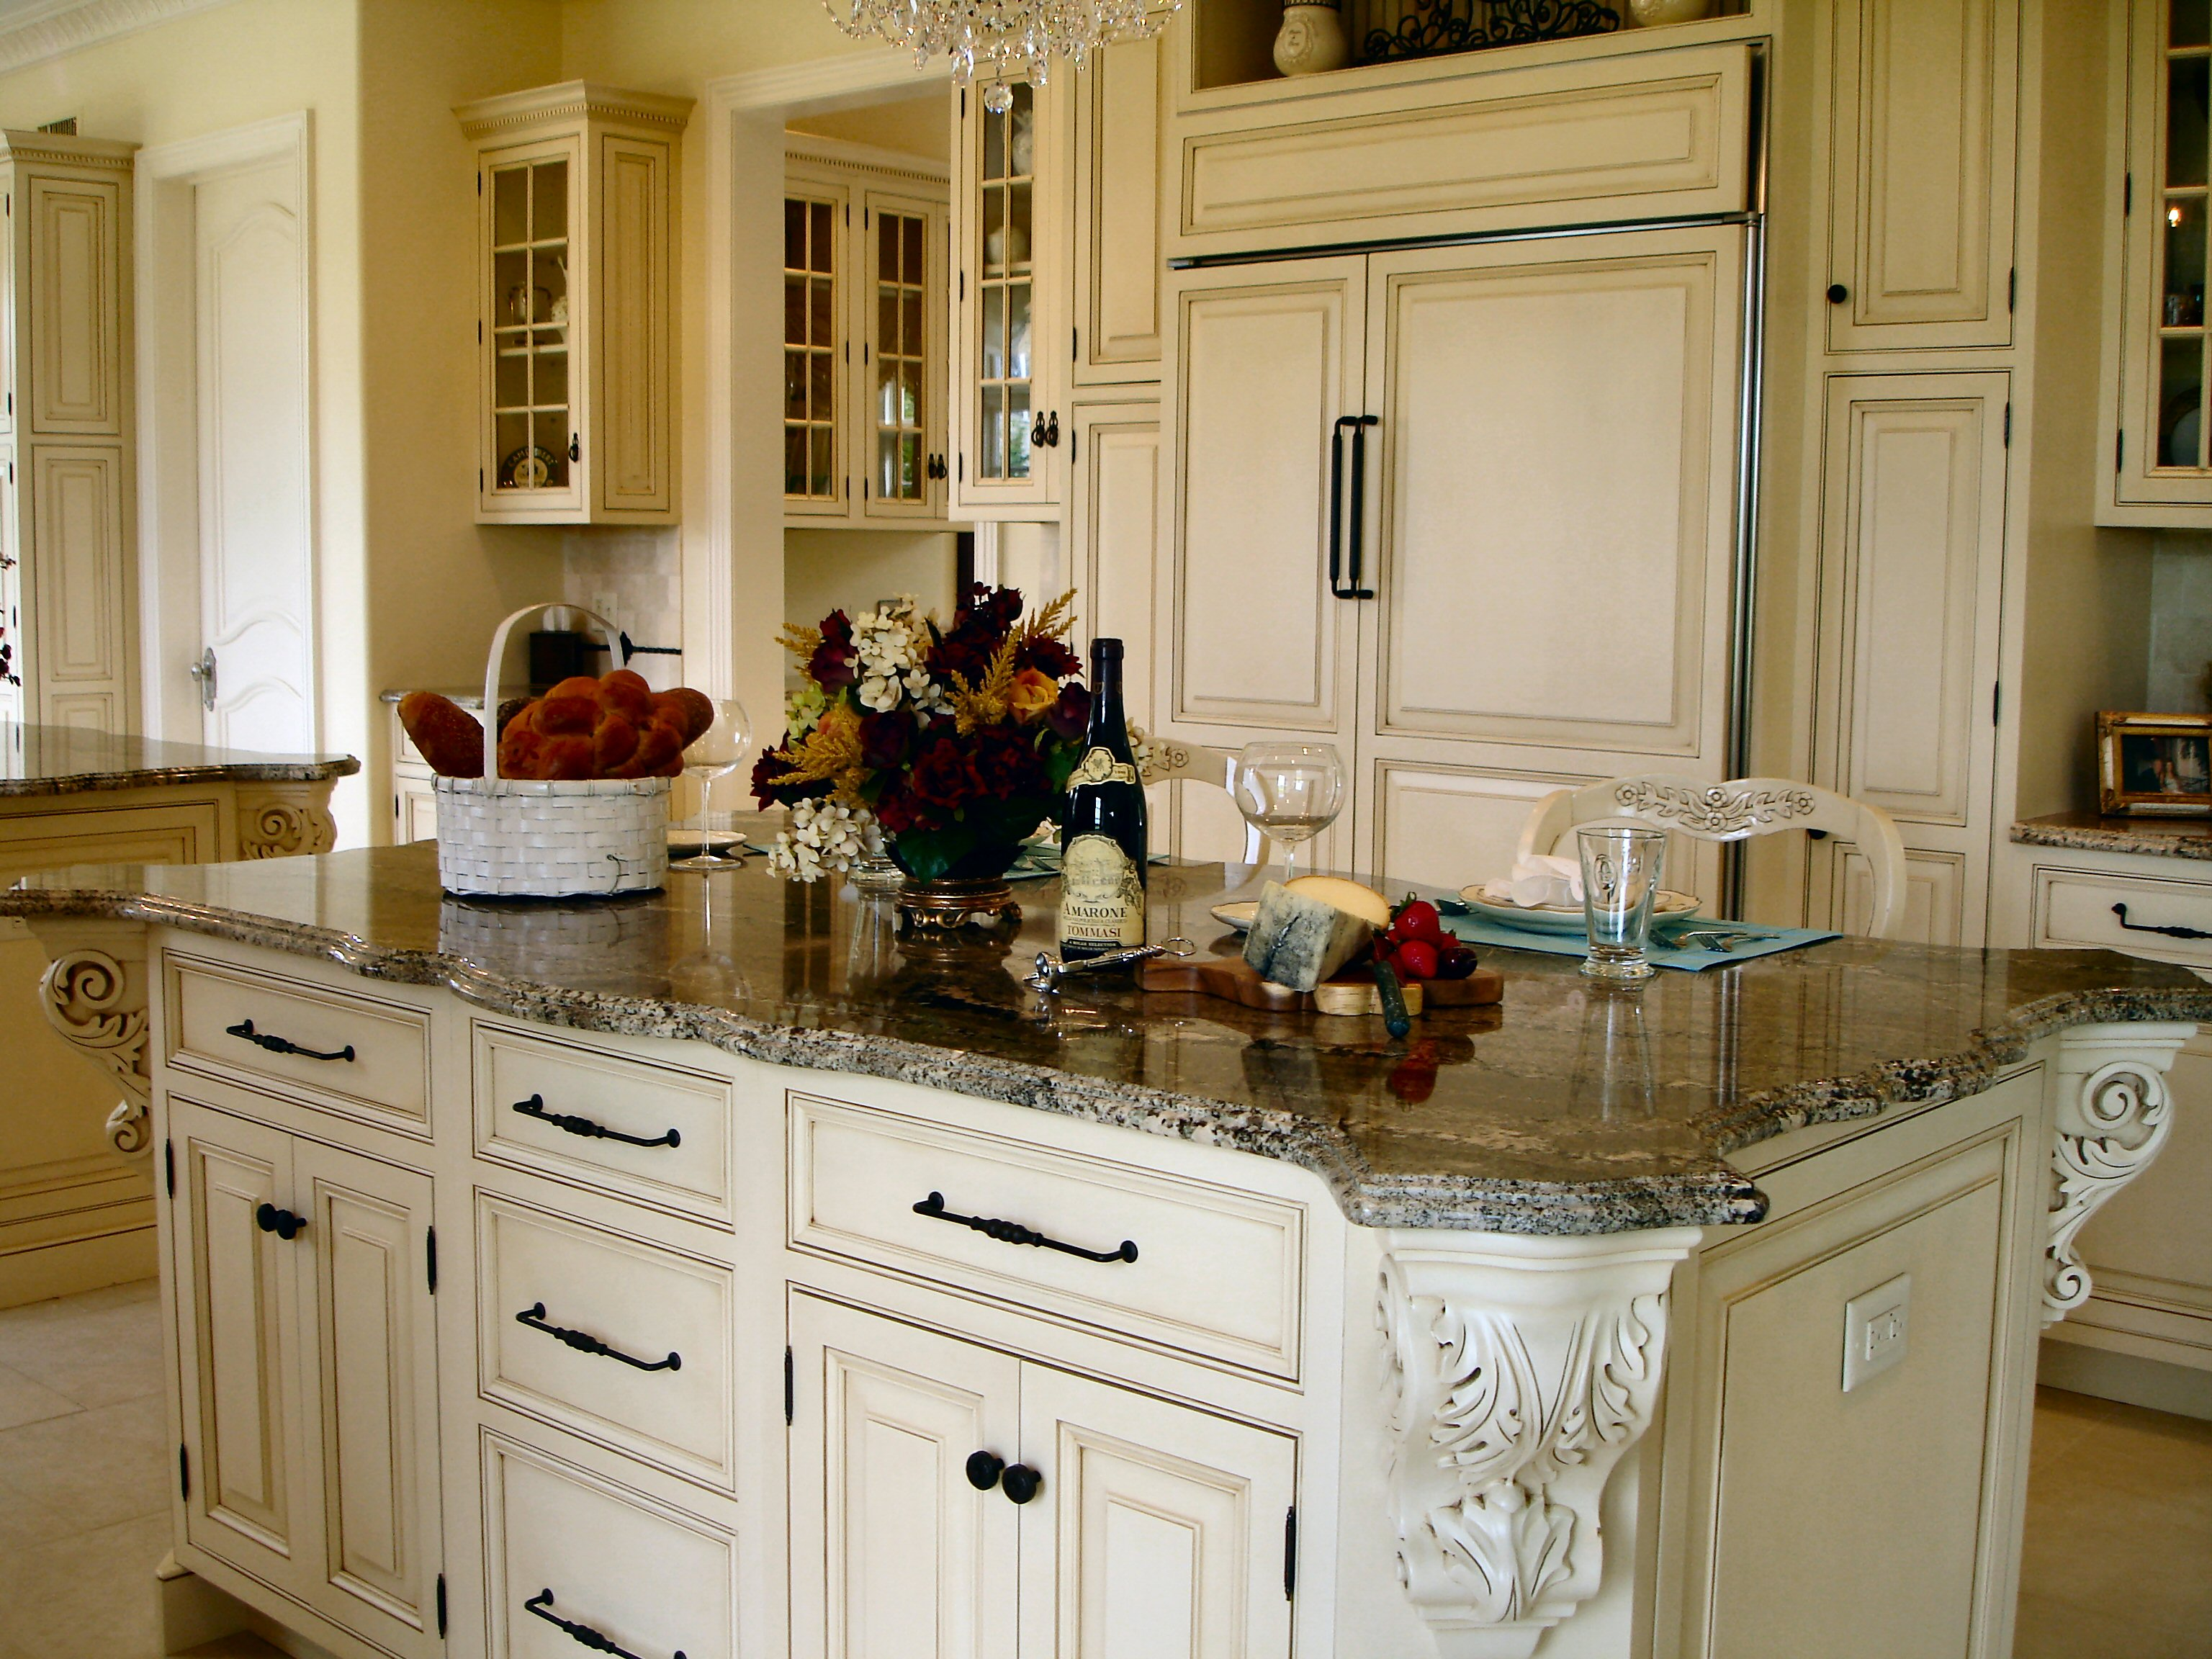 Kitchen Island Design Ideas ~ Monmouth county kitchen remodeling ideas to inspire you